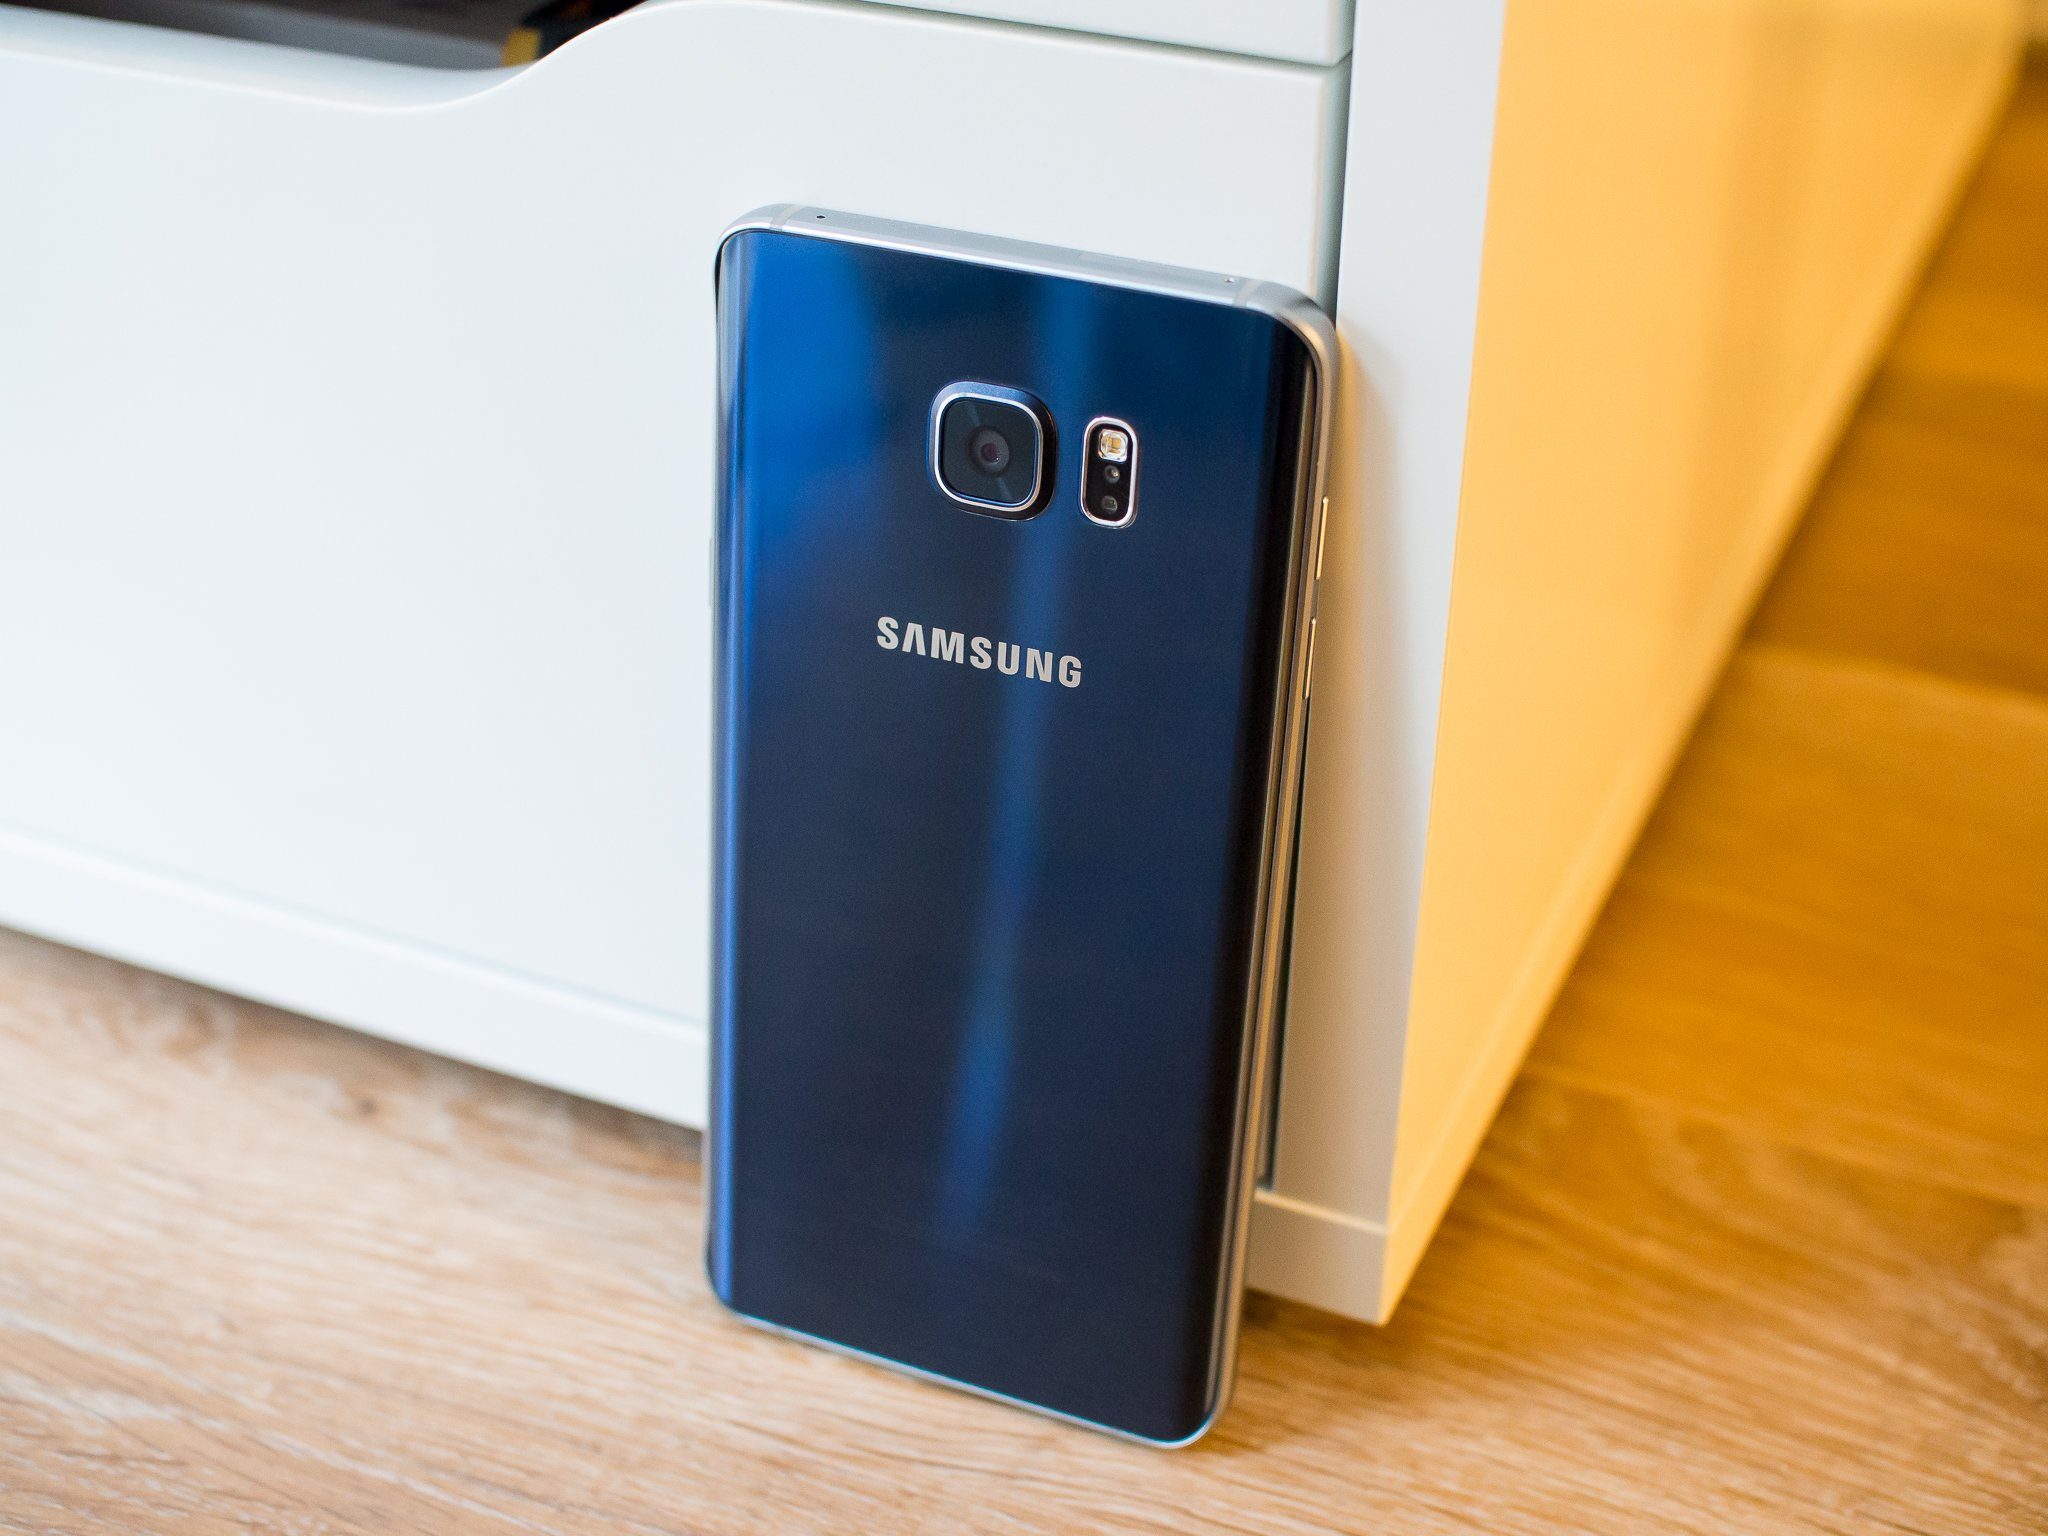 Samsung Galaxy Note 5 Tips And Tricks  Android Central